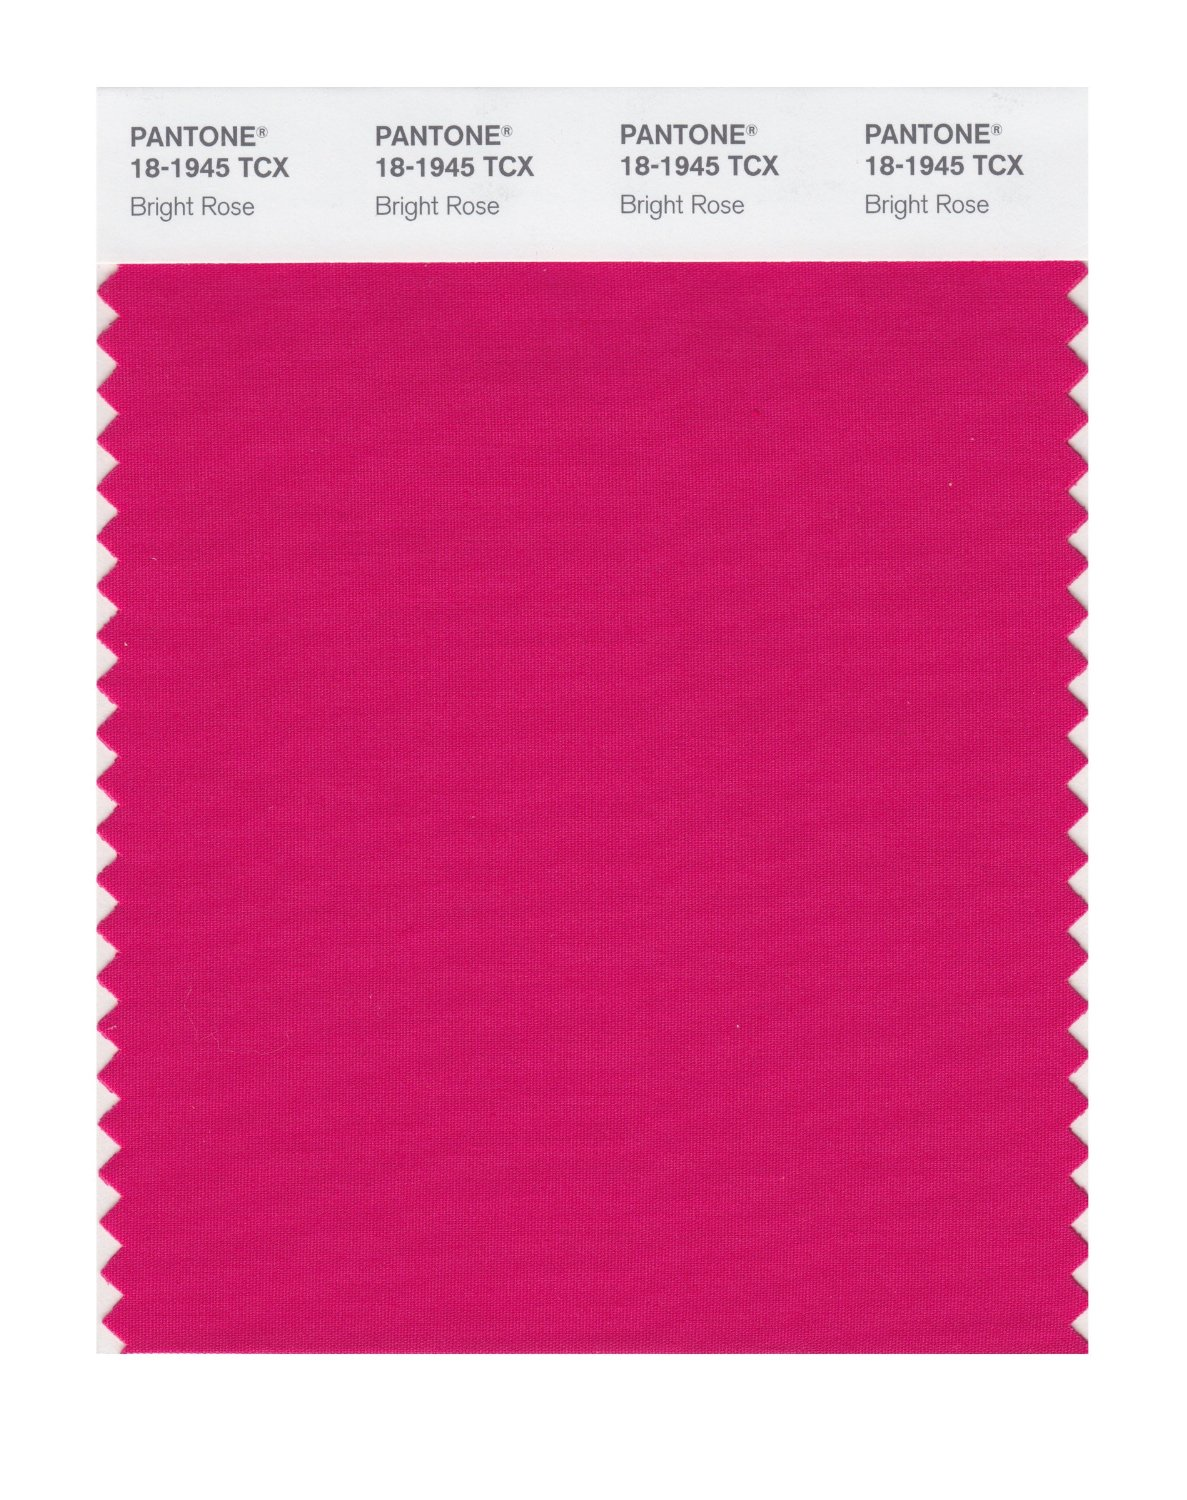 Pantone Smart Swatch 18-1945 Bright Rose